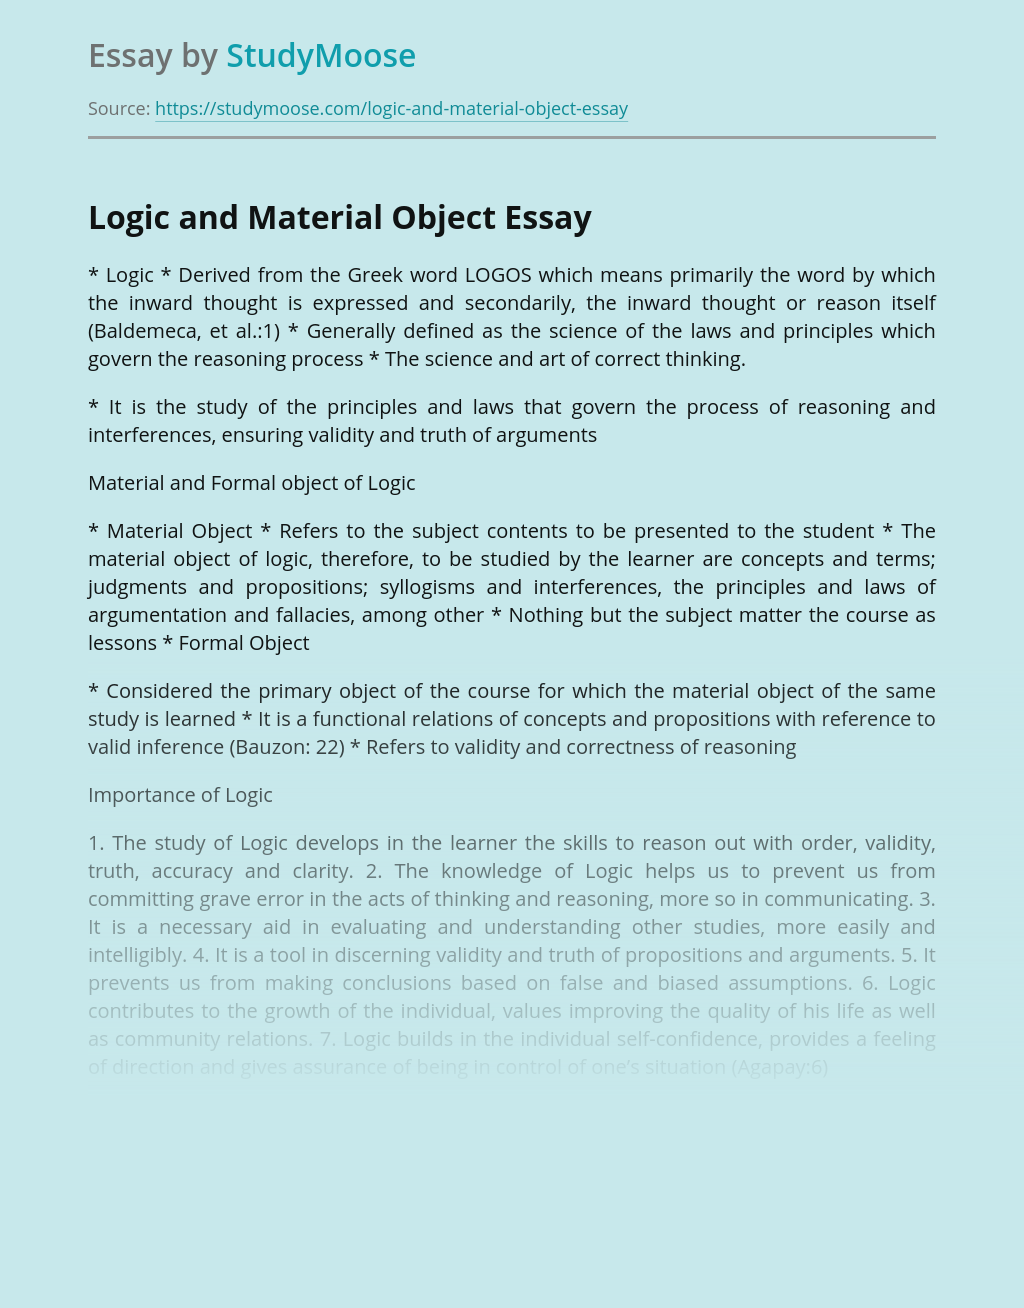 Logic and Material Object